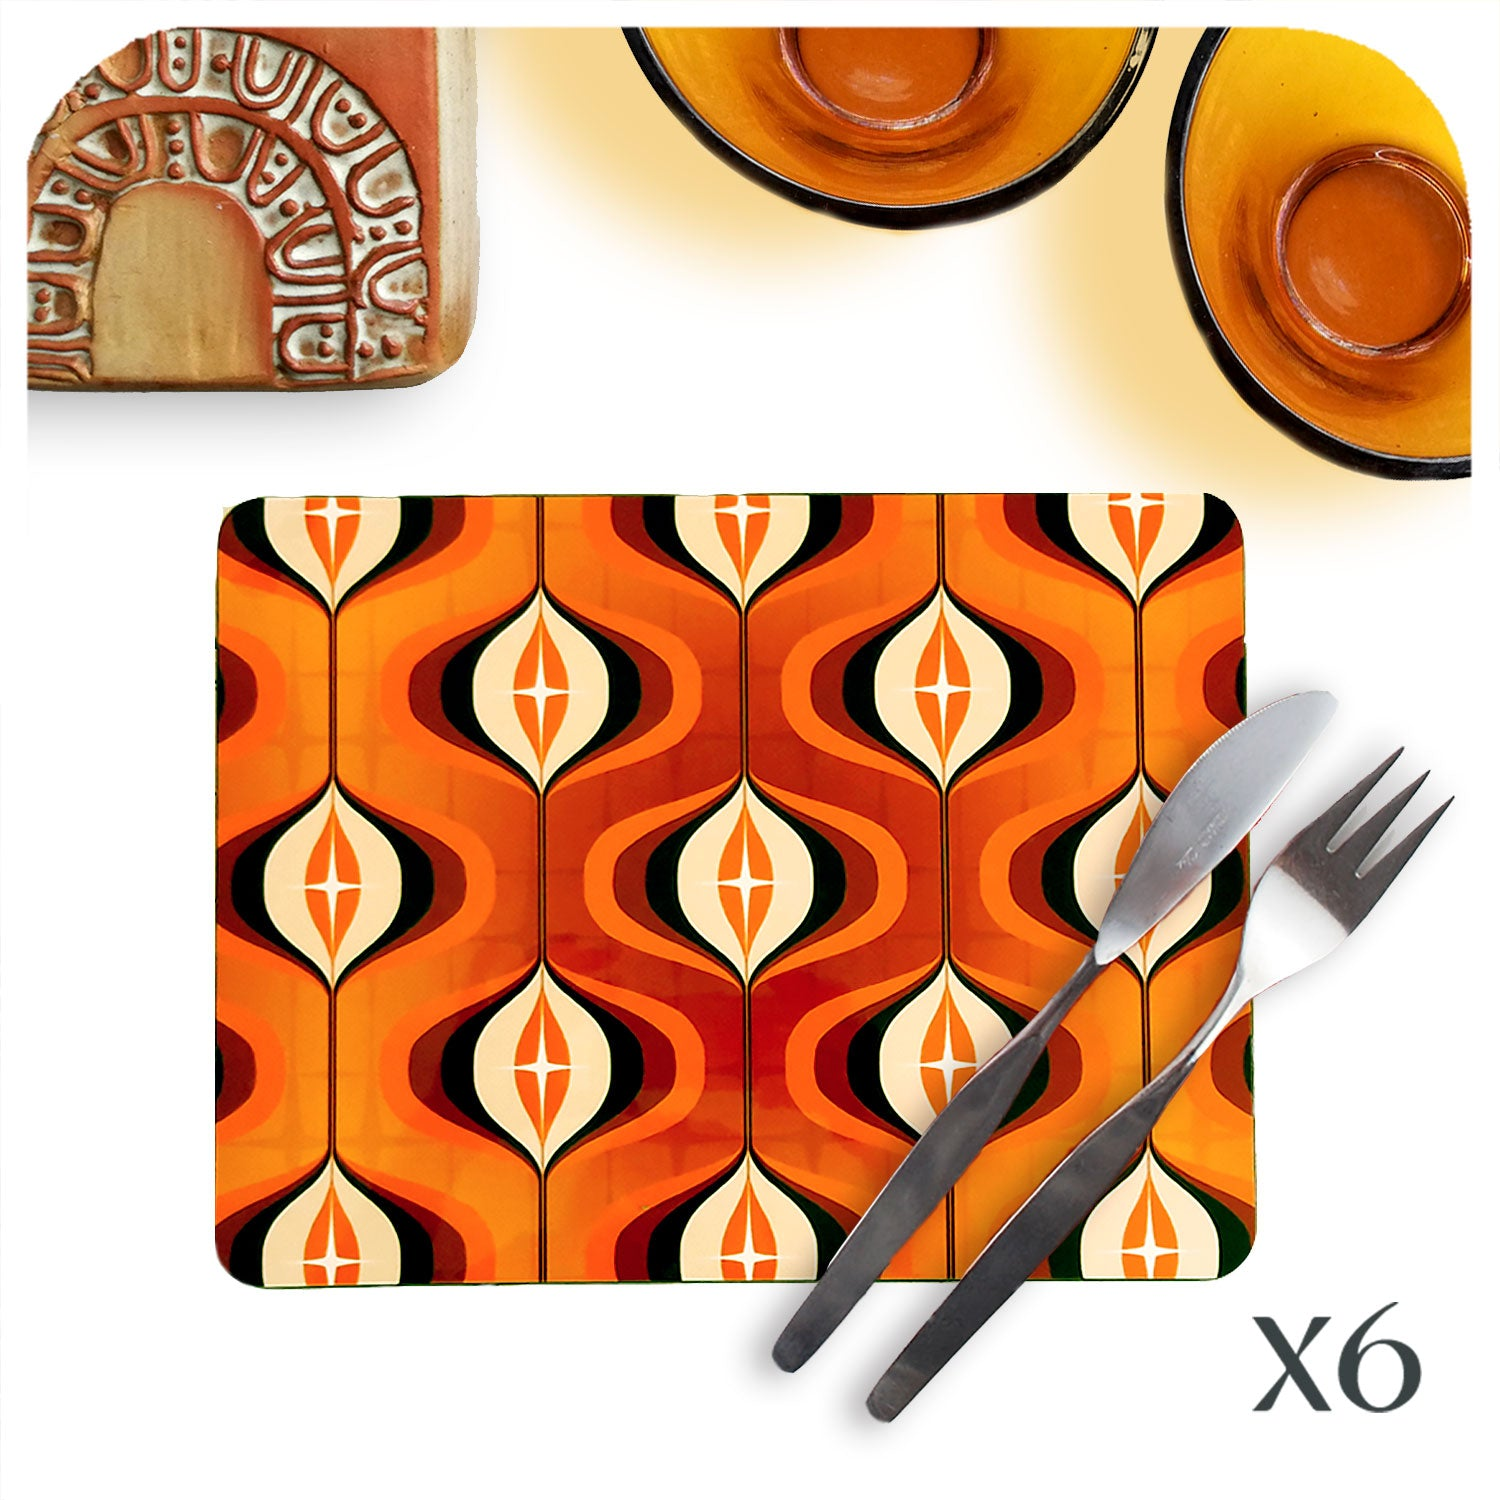 Orange Op Art Placemats, set of 6 | The Inkabilly Emporium